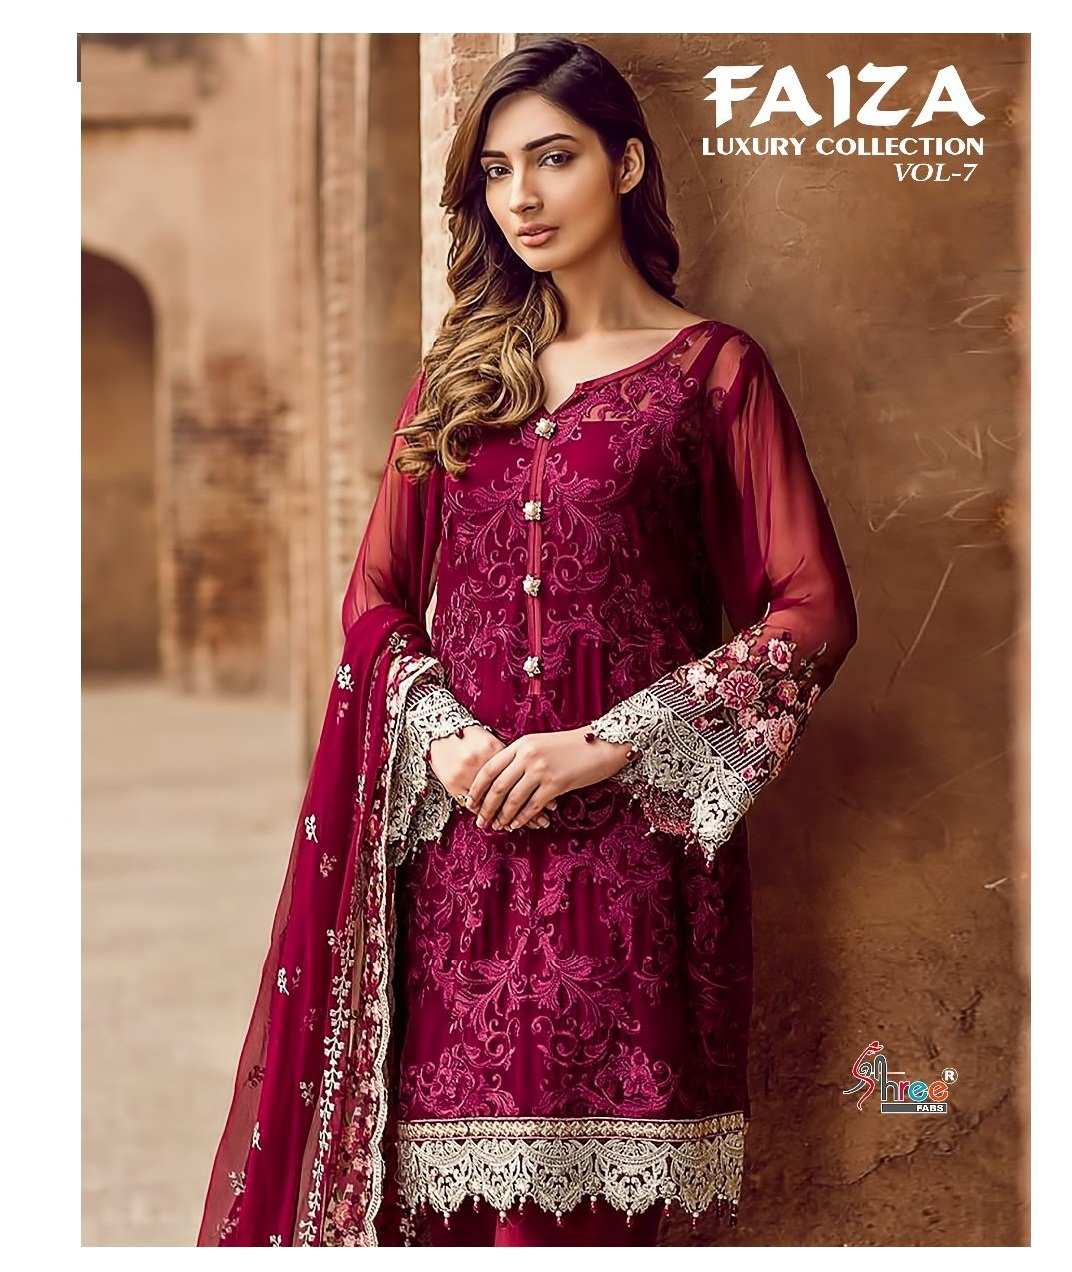 d3ee920639 FAIZA LUXURY COLLECTION VOL 7 – Georgette fabric embroidery work pakistani  style salwar kameez